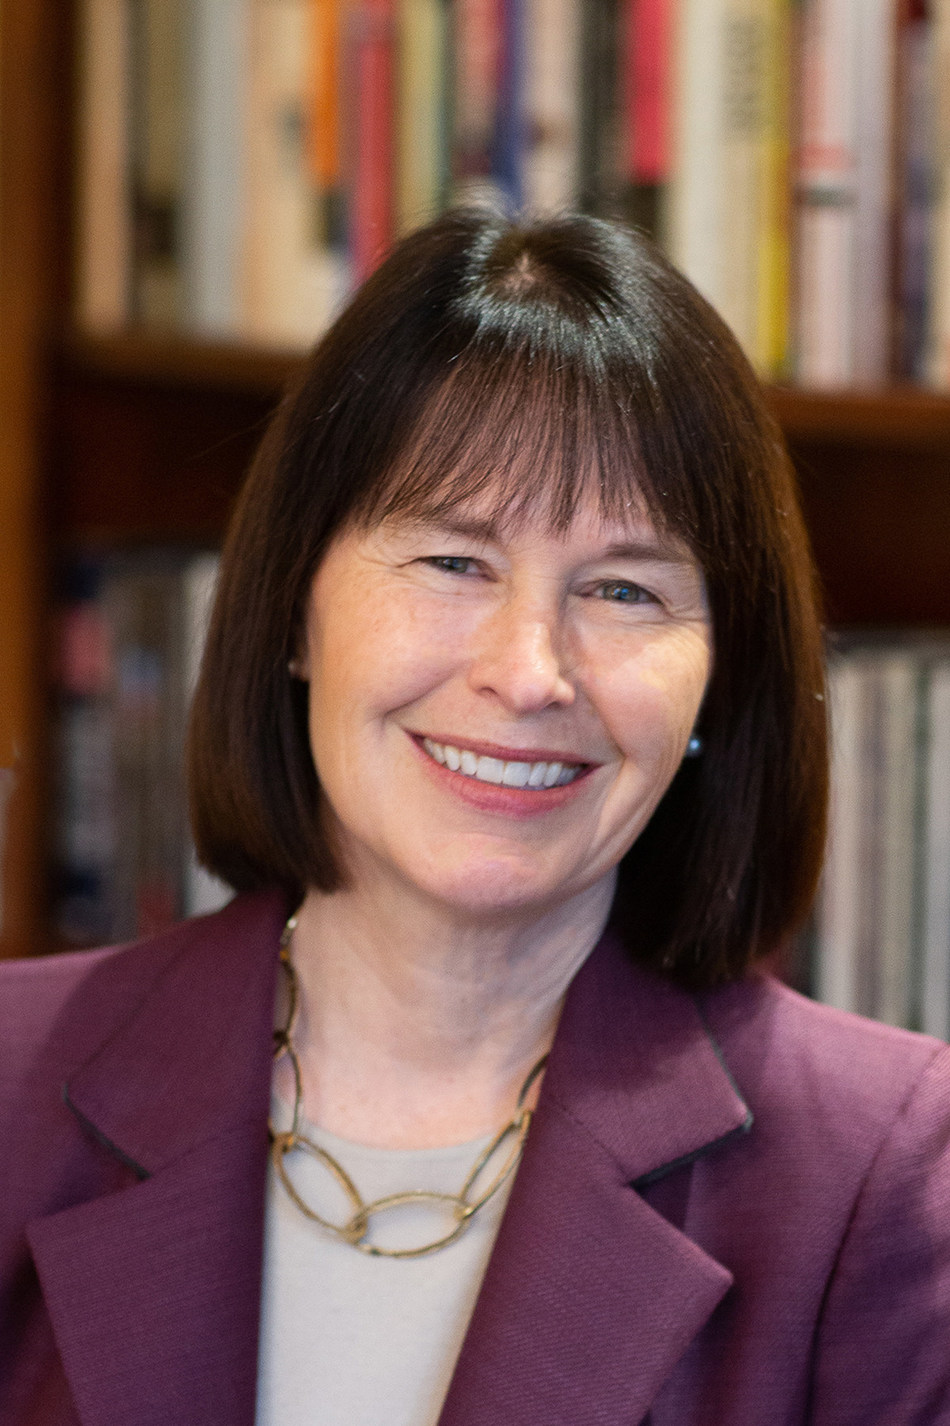 American Public University System (APUS) has appointed Dr. Mary B. Marcy to its Board of Trustees. Dr. Marcy is a nationally recognized thought leader in higher education innovation and transformation.